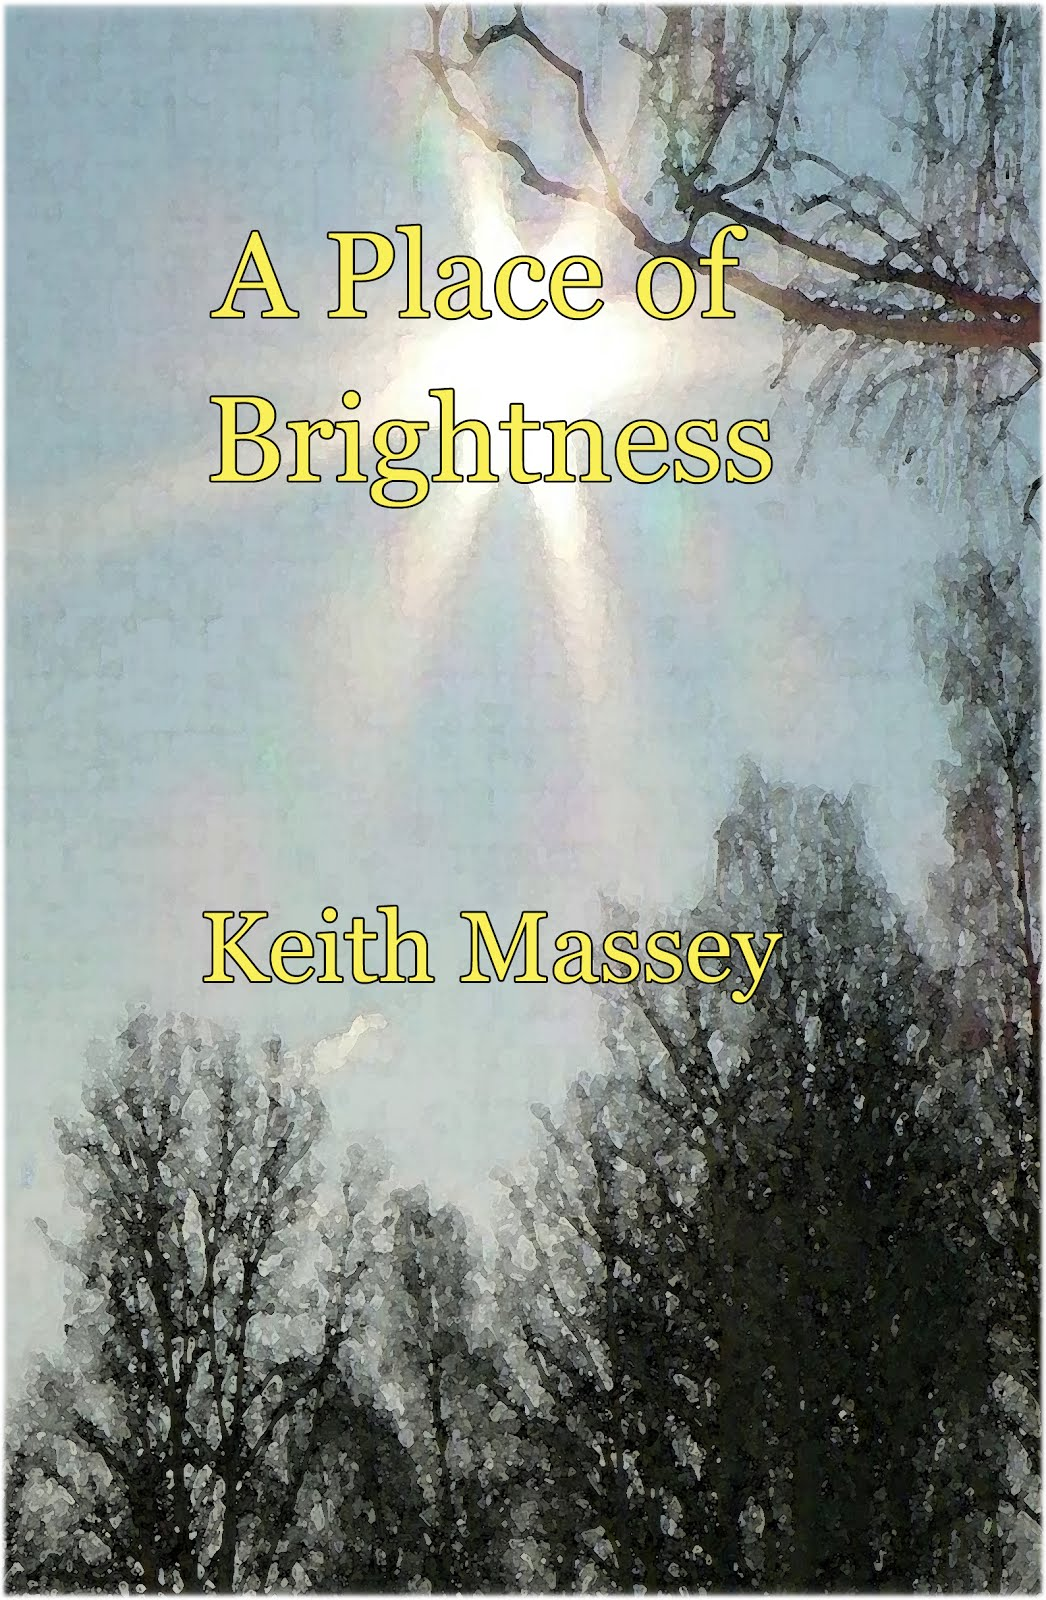 A Place of Brightness is the First Novel in the Series